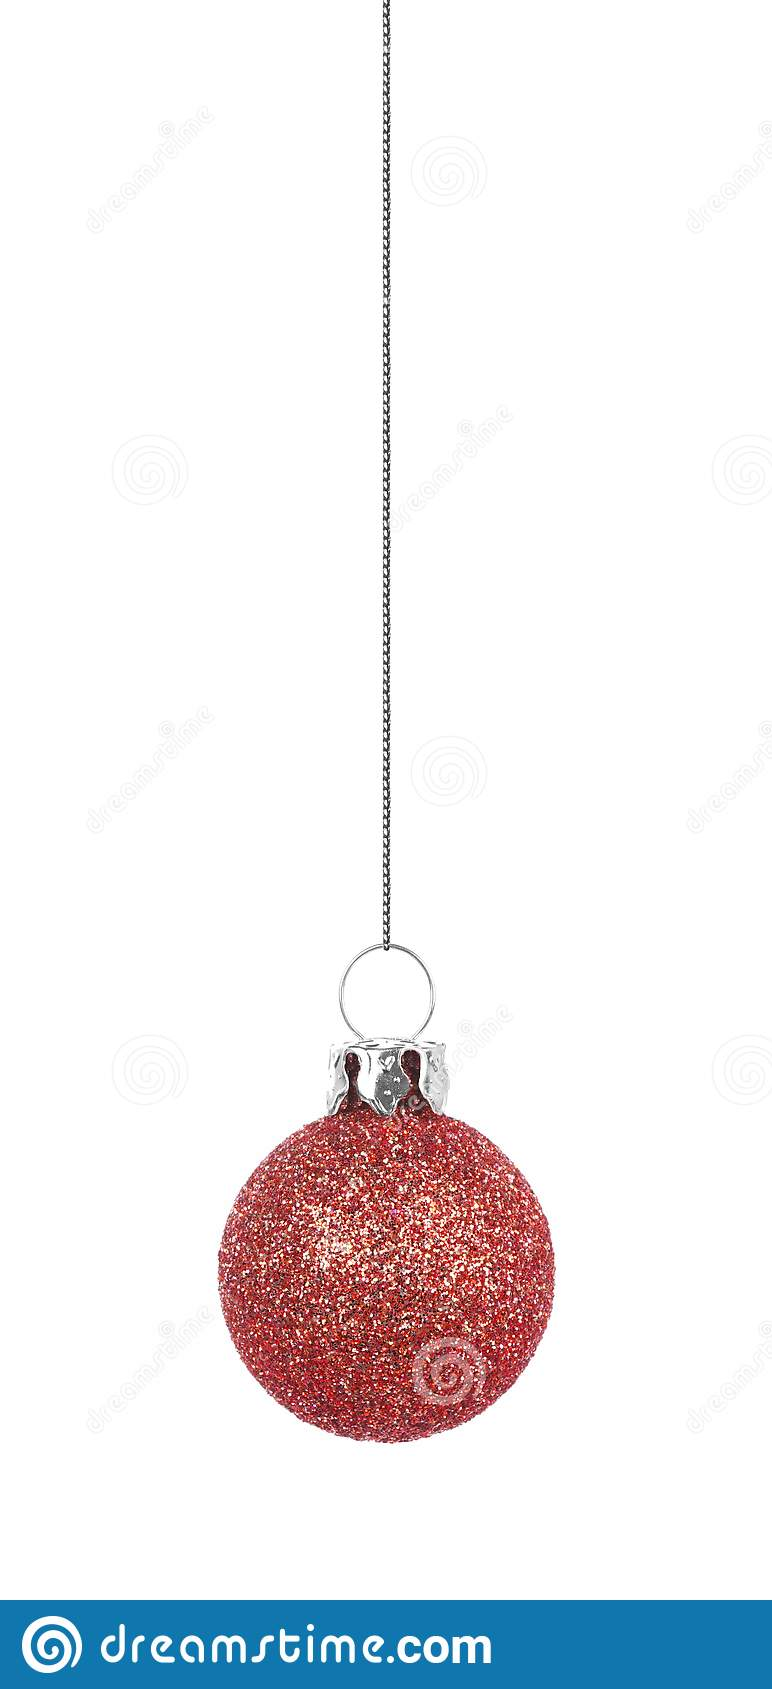 Hanging Glittery Dusty Rose Christmas Ornament Isolated On ...